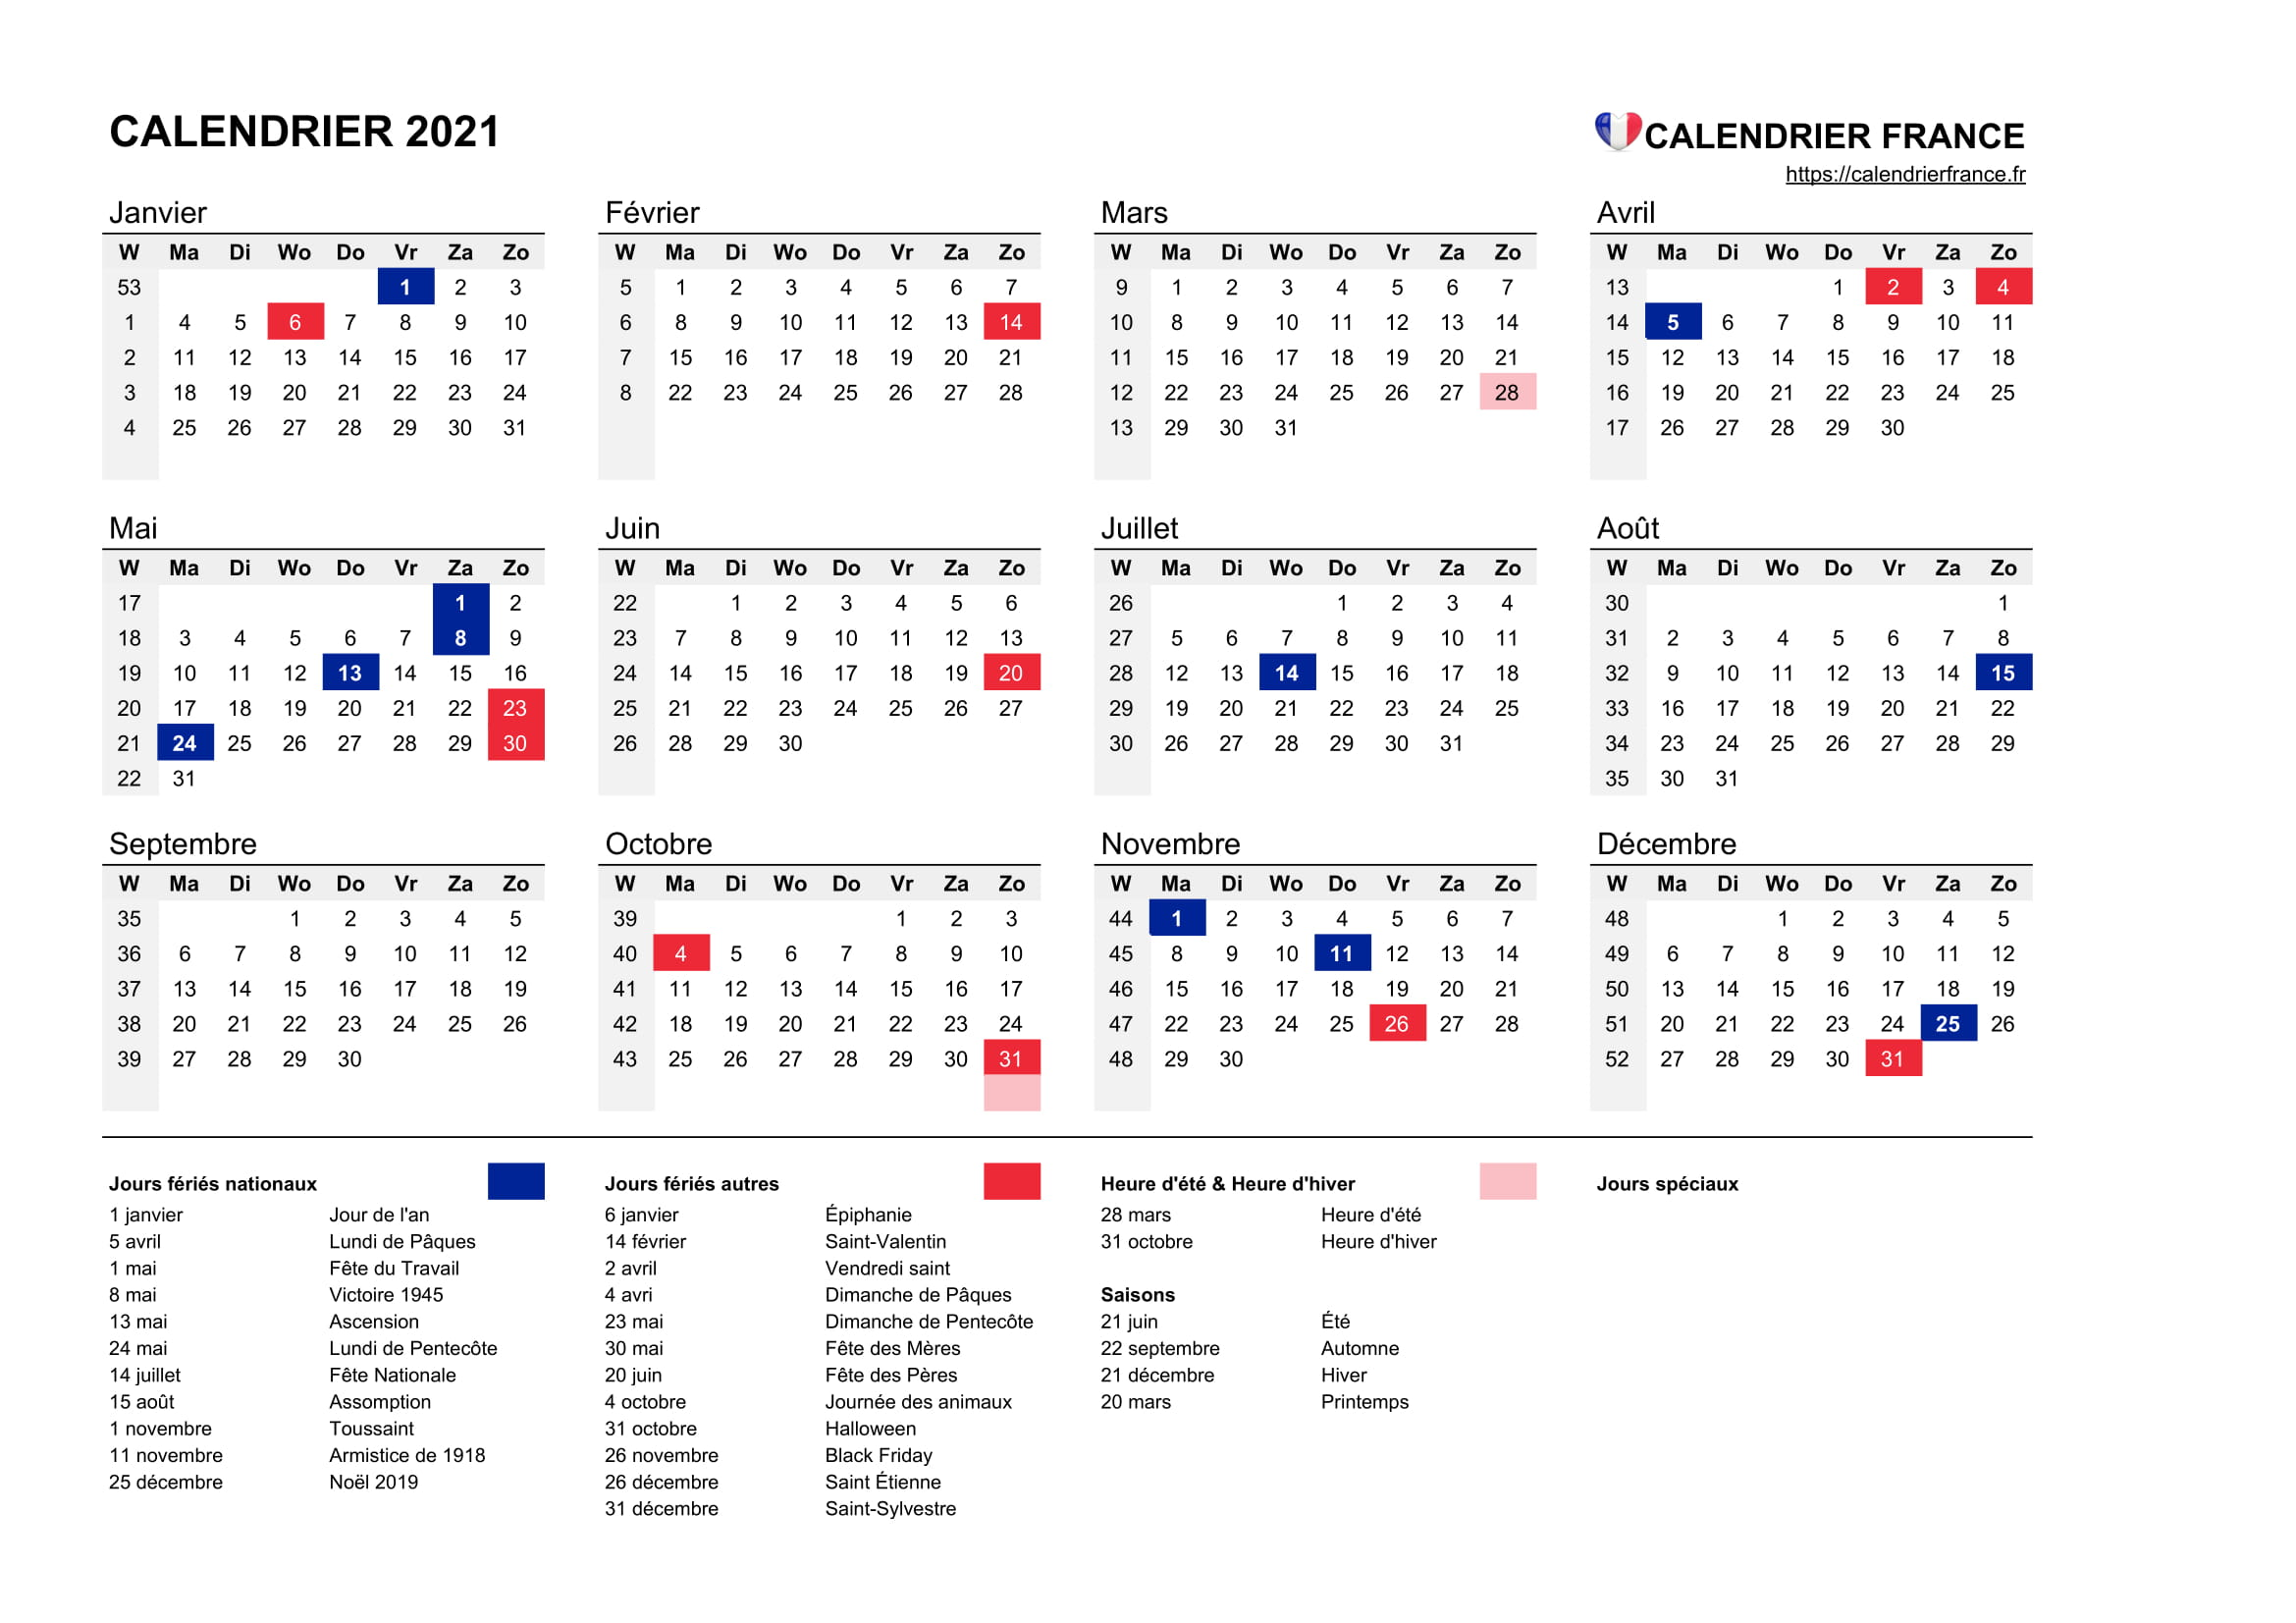 Calendrier 2021 • Calendrier France